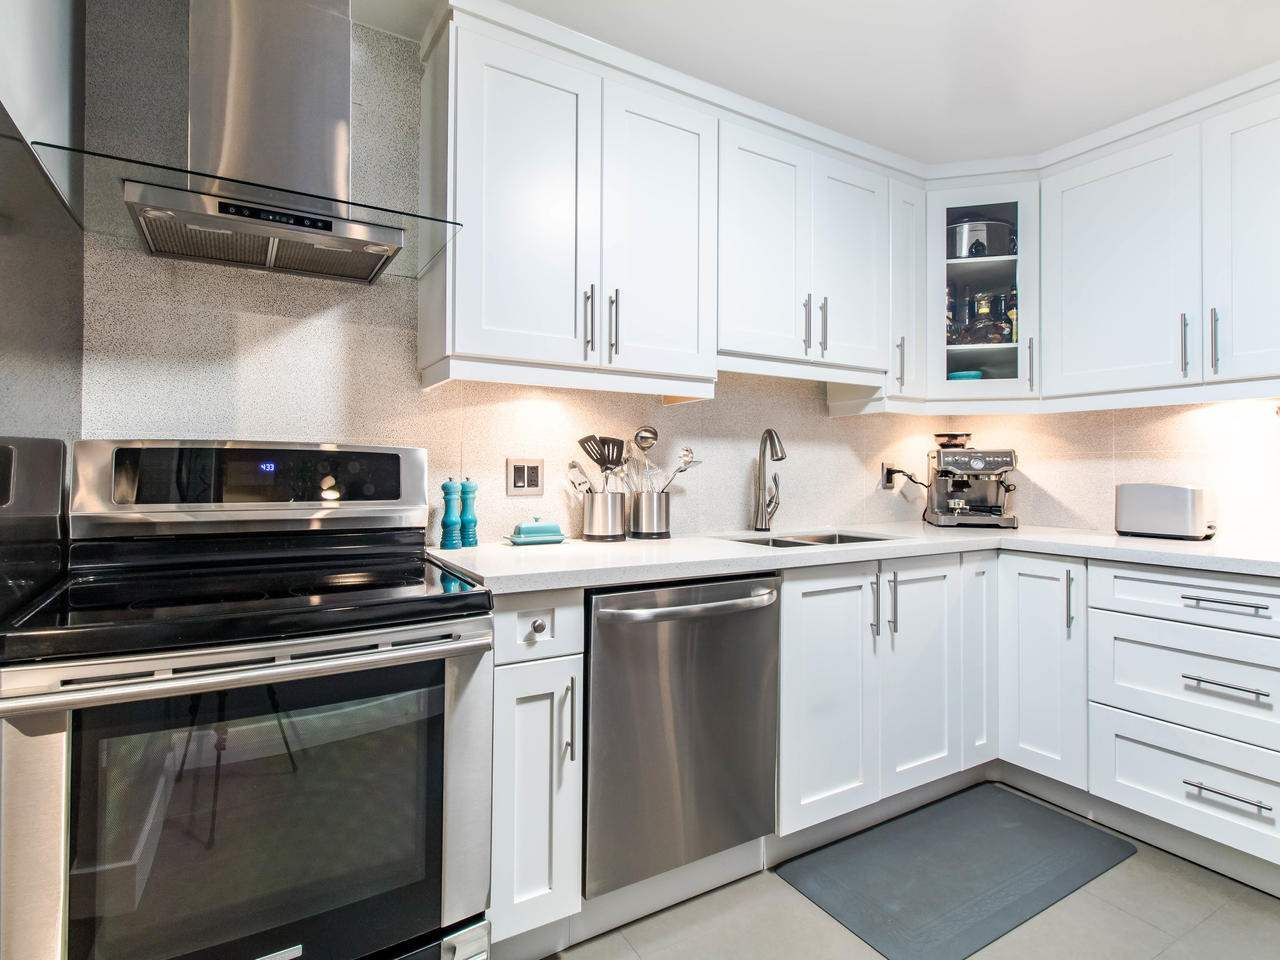 Main Photo: 206 1420 E 8TH AVENUE in Vancouver: Grandview Woodland Condo for sale (Vancouver East)  : MLS®# R2430101